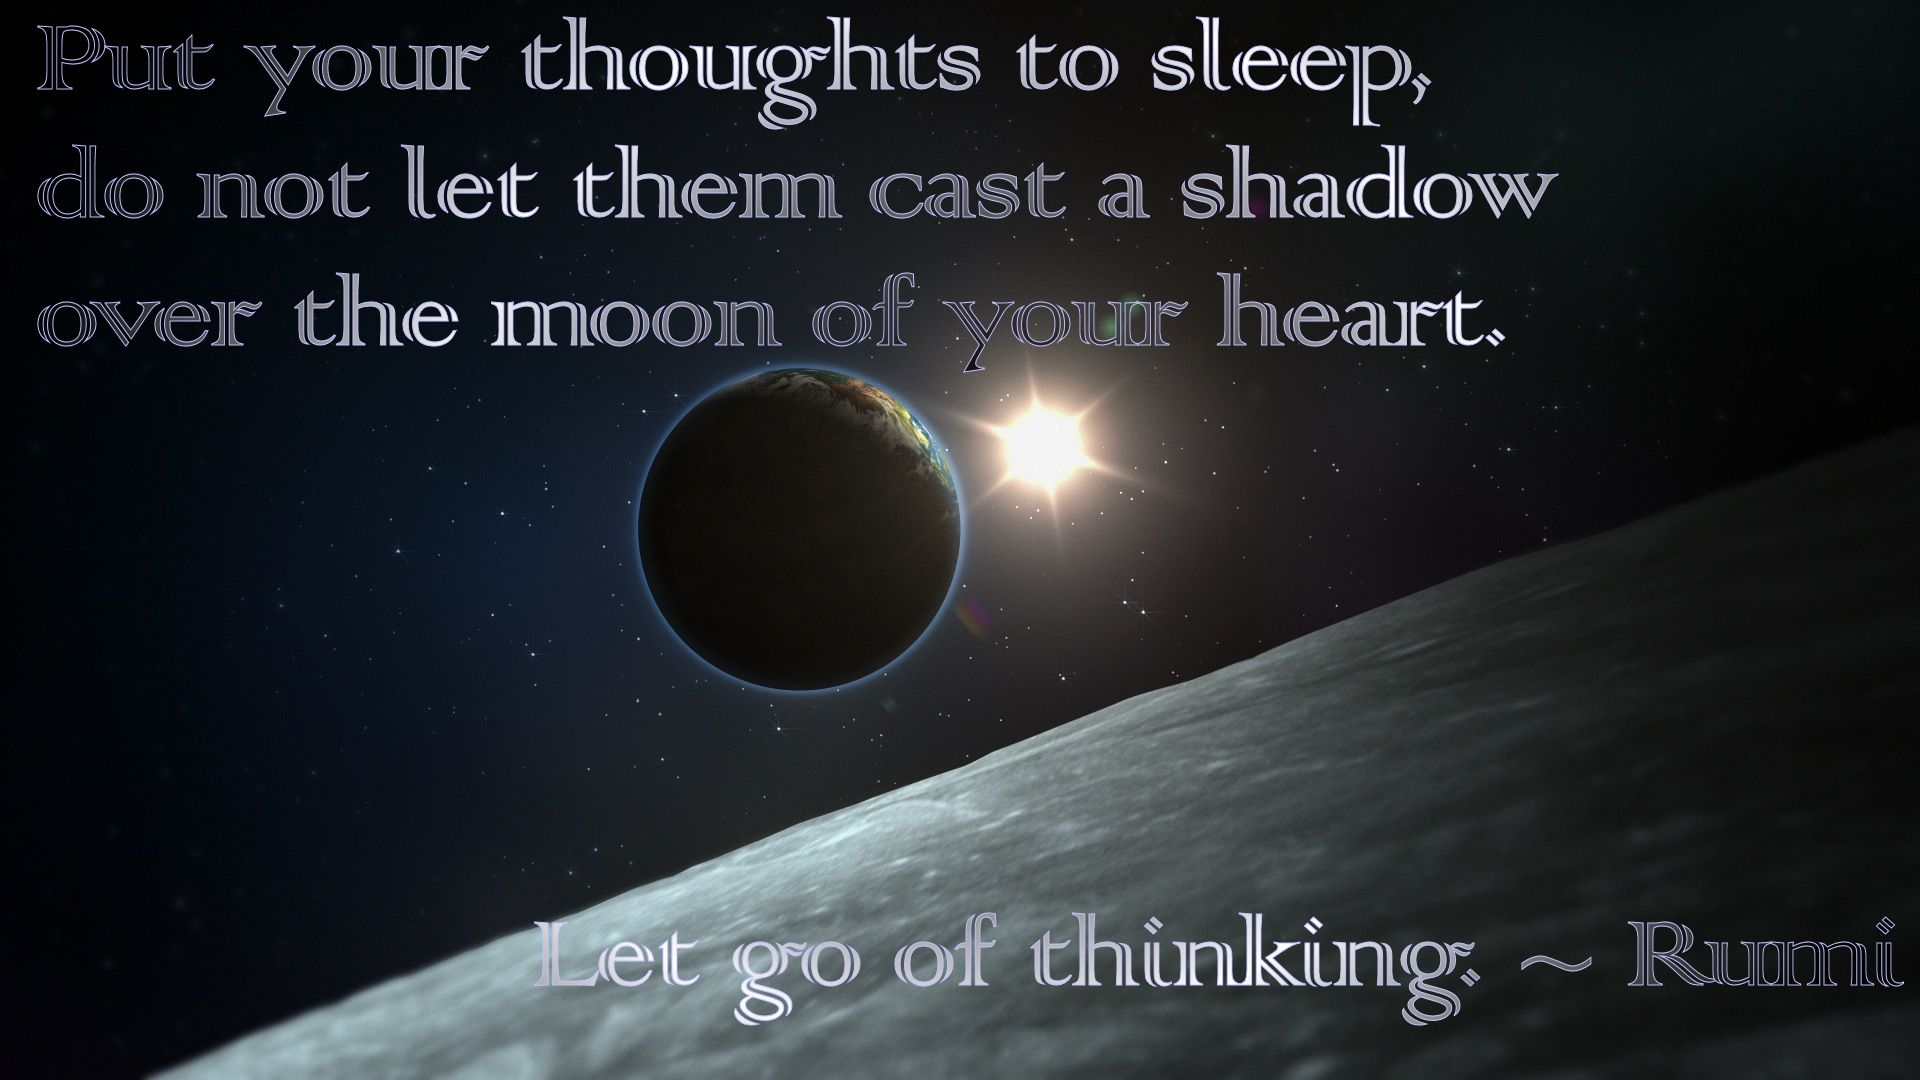 Put your thoughts to sleep, do not let them cast a shadow over the moon of your heart. Let go of thinking. ~ Rumi